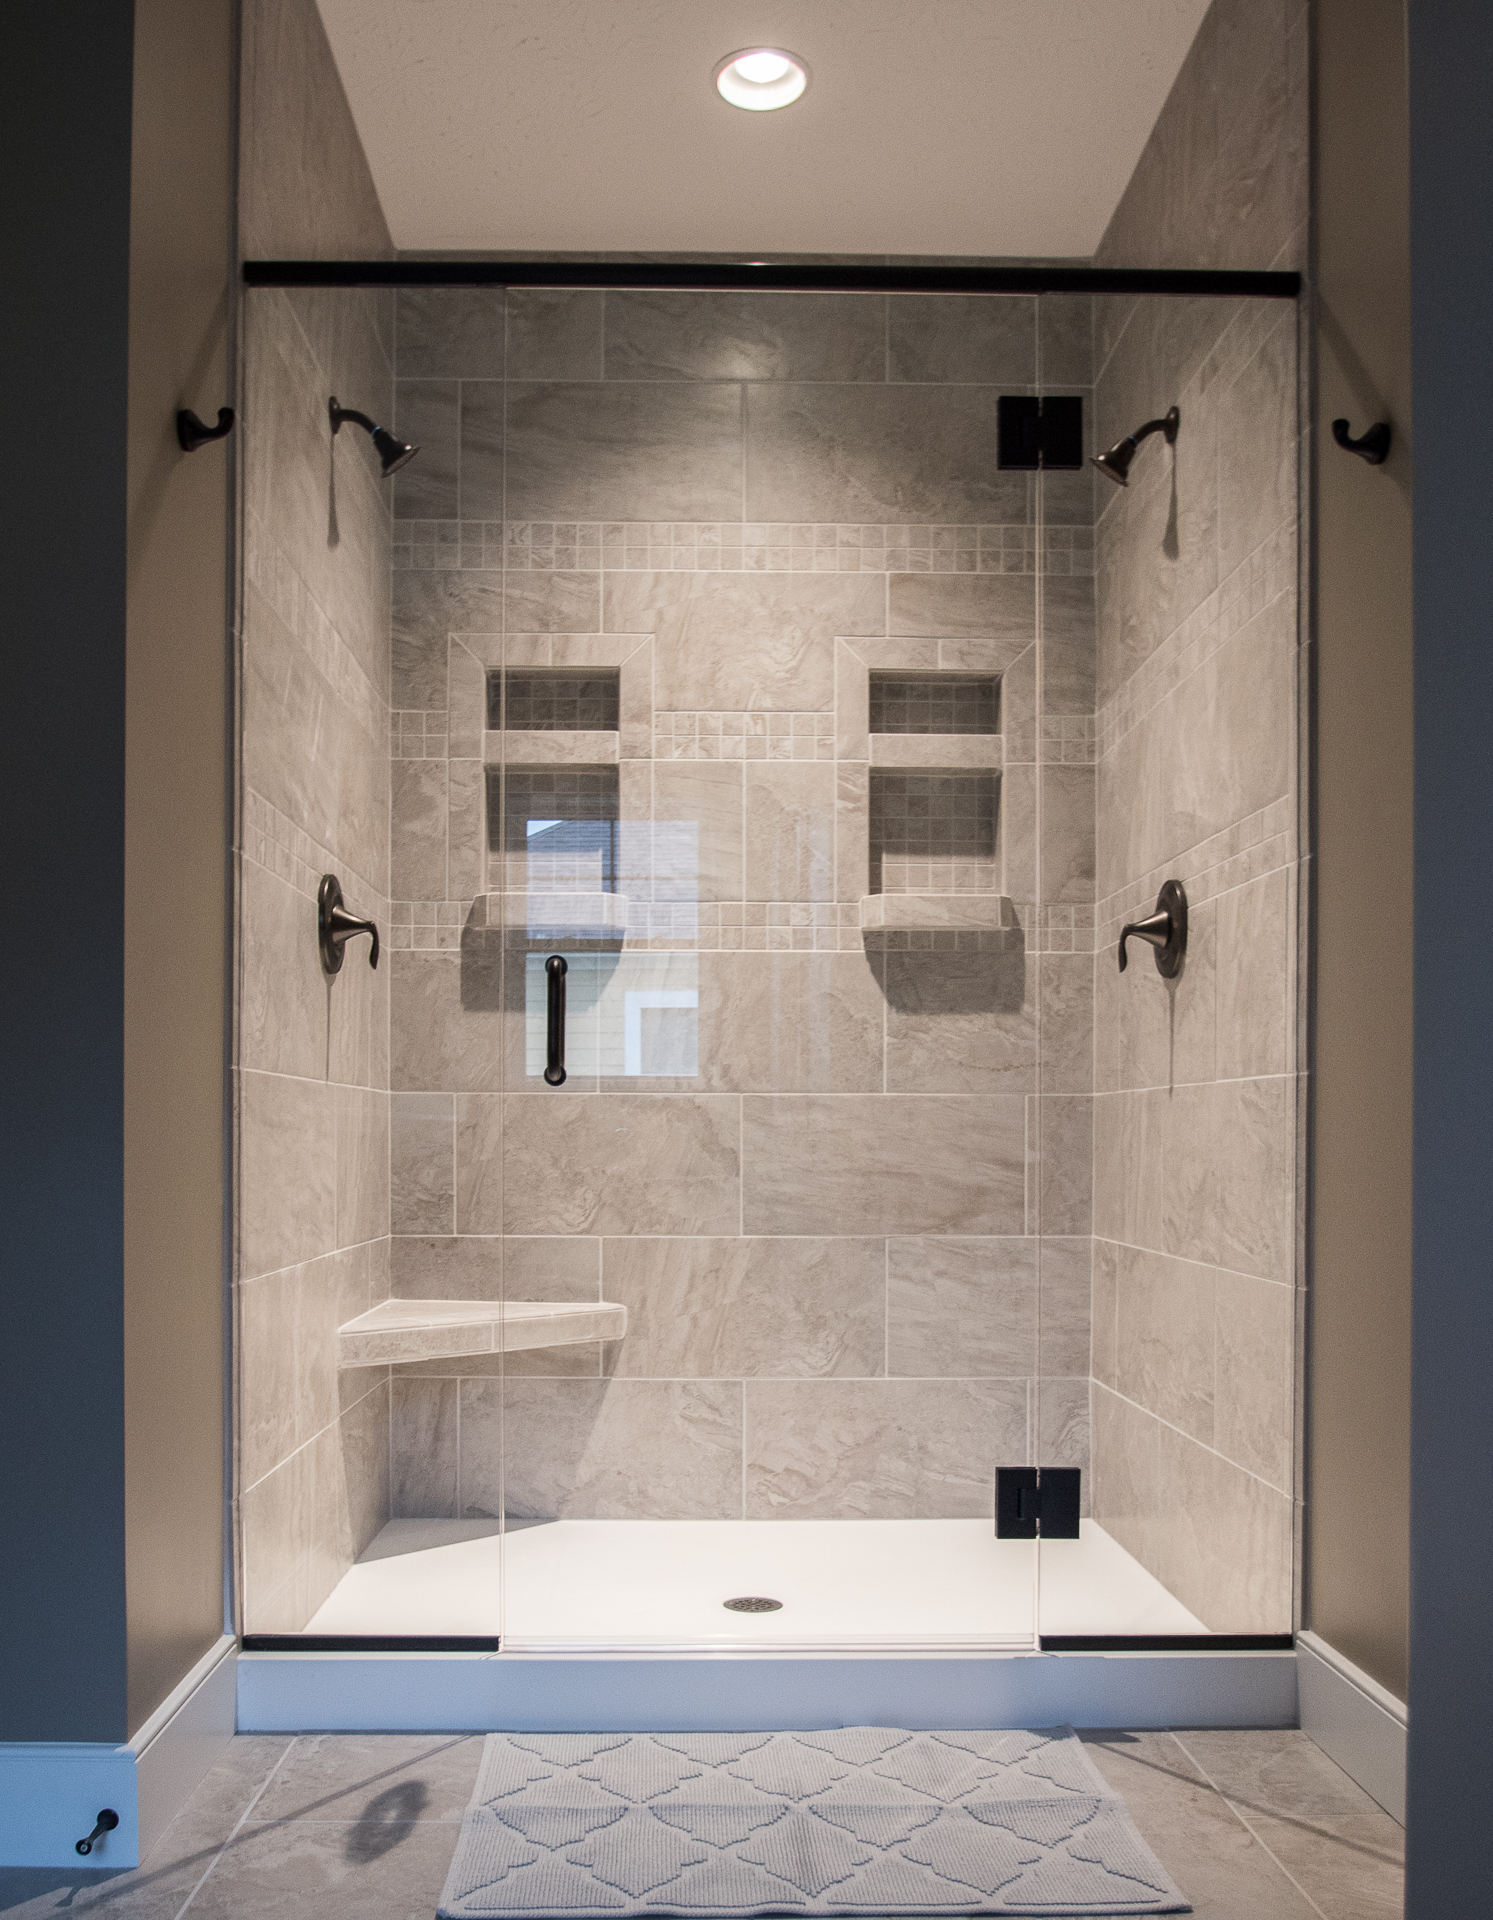 Master shower Florim Jewel Silver, 12X24 brick lay ceramic tile, dual Moen Eva oil rubbed bronze fixtures, recessed boxes and seat